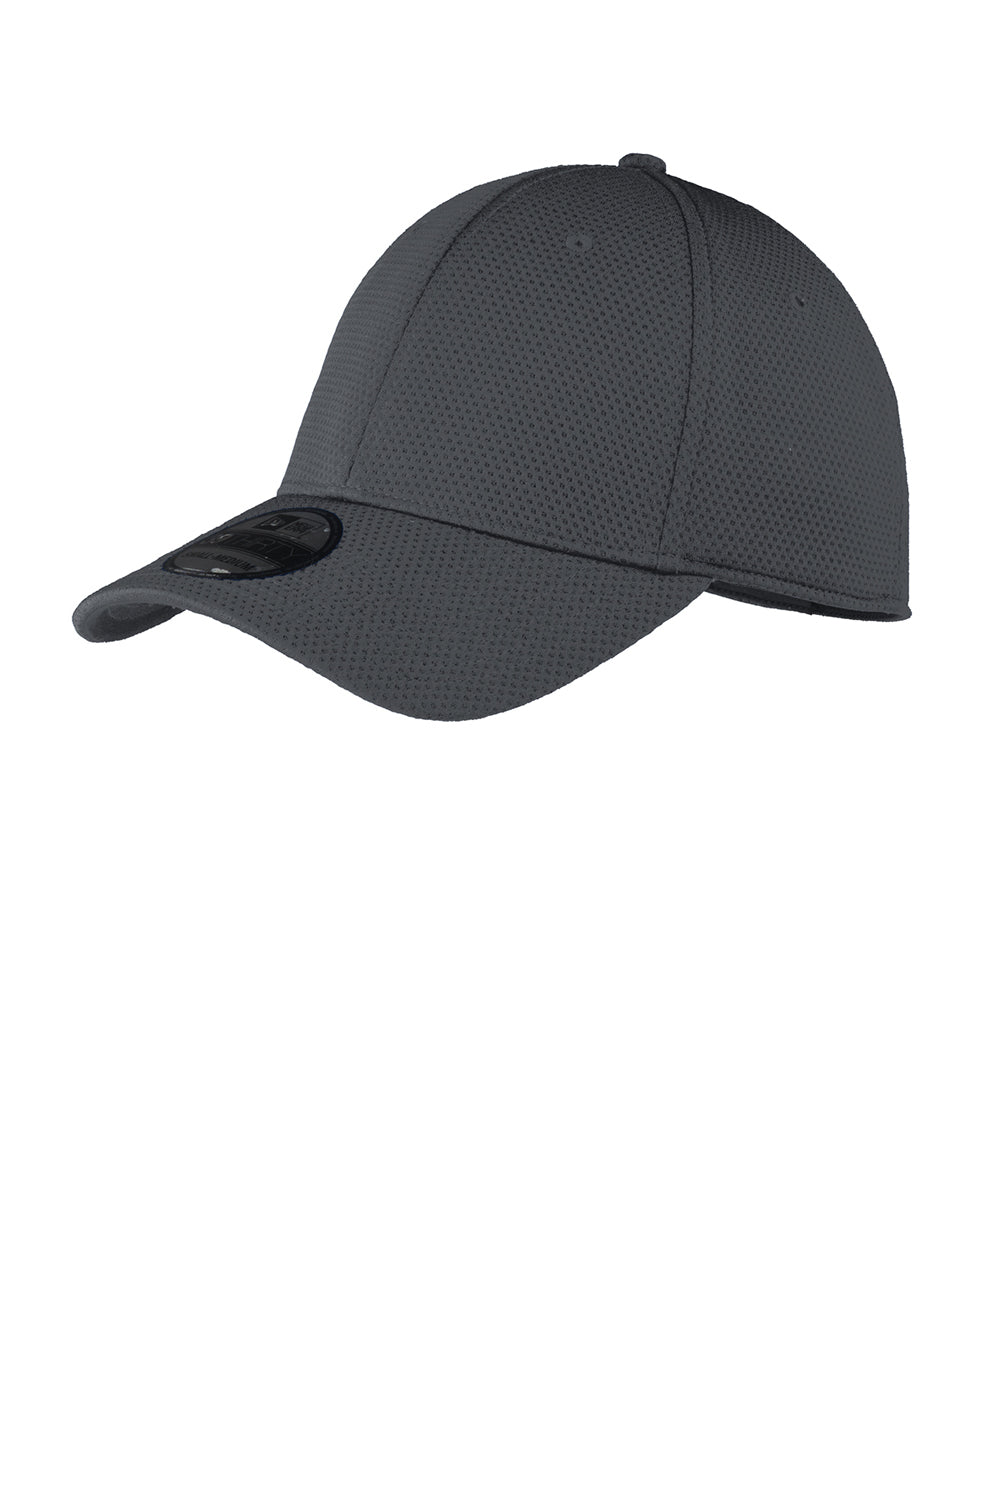 New Era NE1090 Mens Moisture Wicking Stretch Fit Hat Charcoal Grey Front